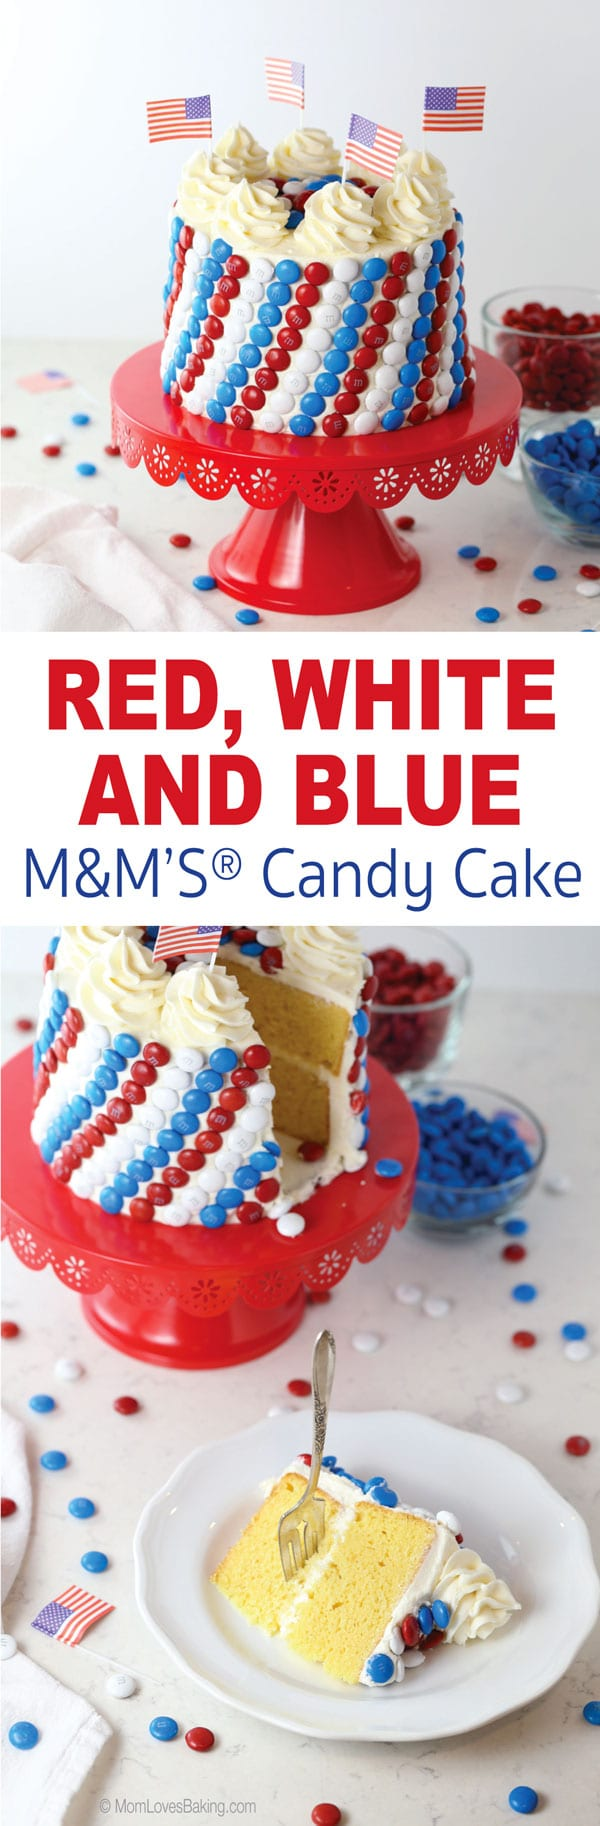 Red, White and Blue M&M's Candy Cake